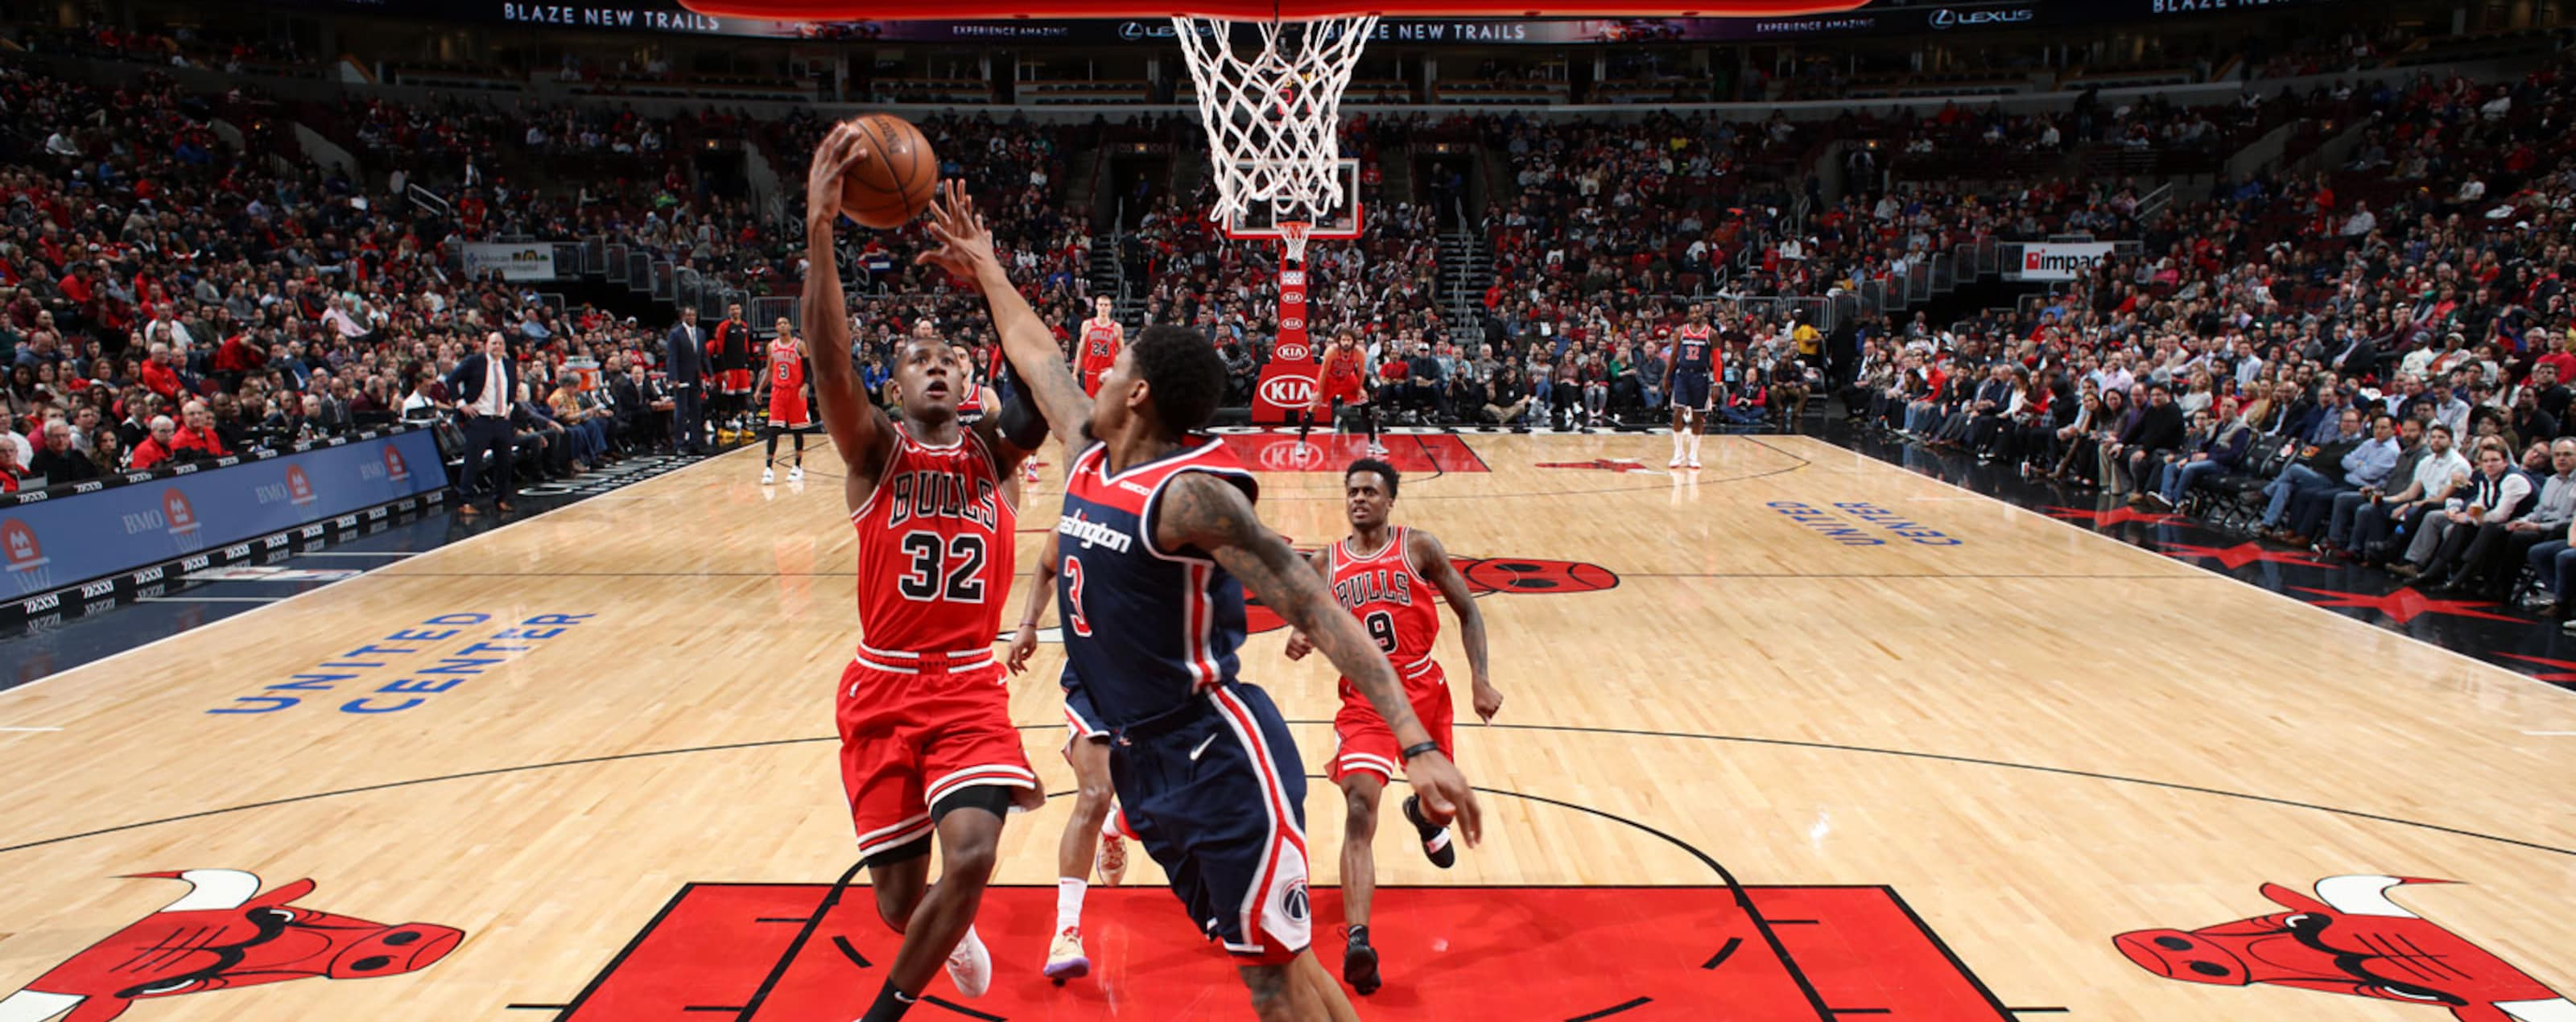 Kris Dunn #32 of the Chicago Bulls goes to the basket against the Washington Wizards on March 20, 2019 at the United Center in Chicago, Illinois.